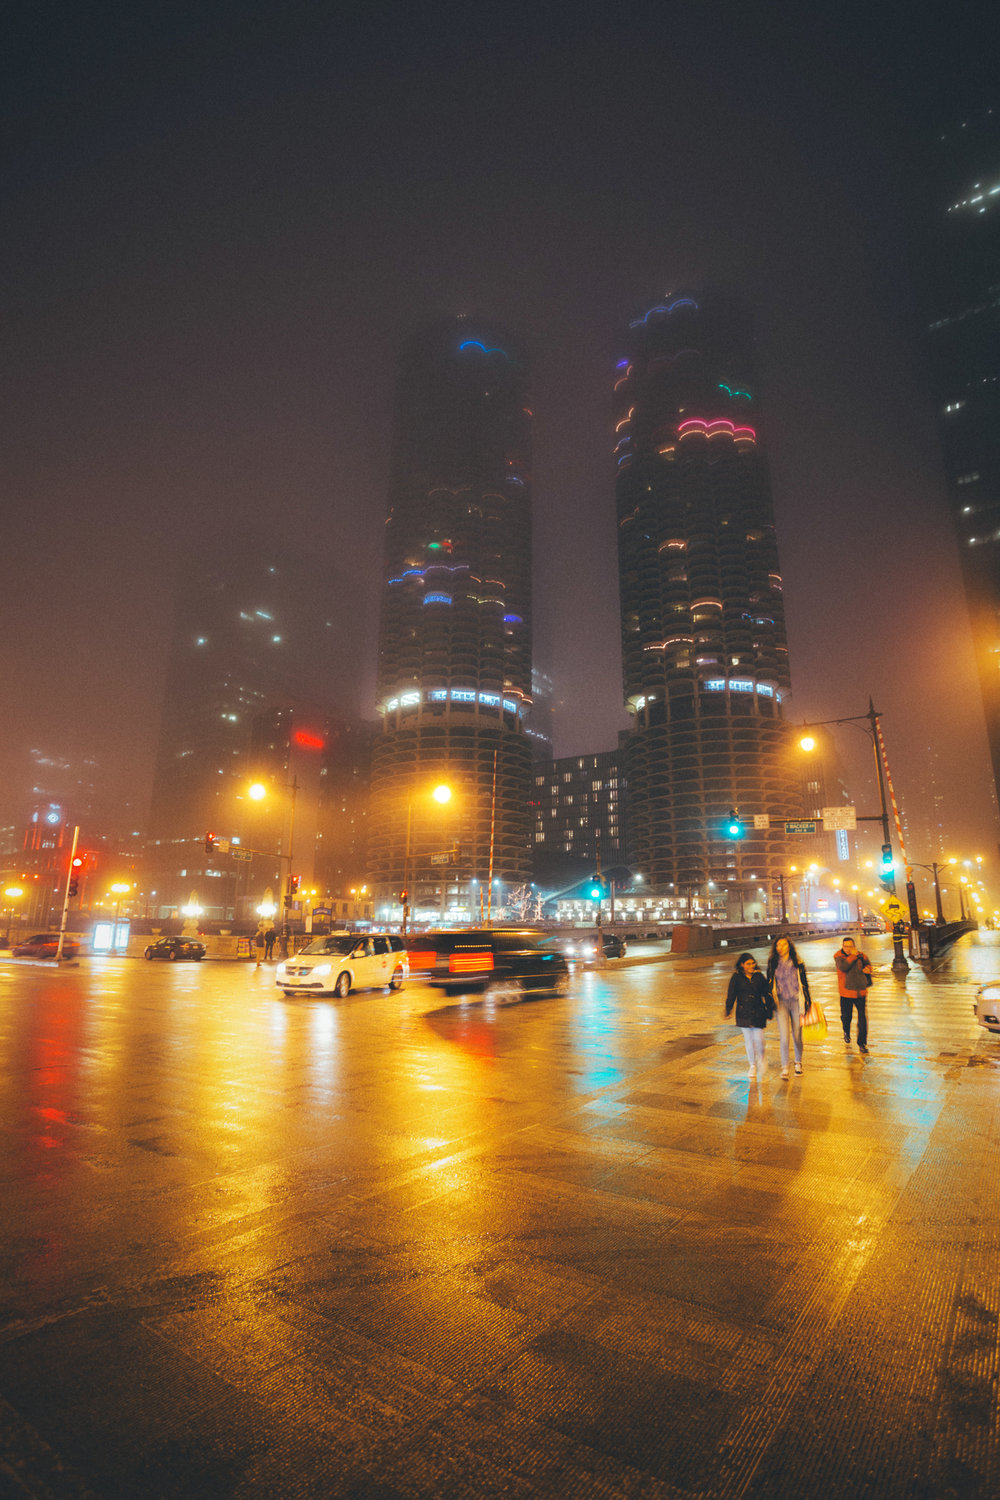 State and Wacker in fog with Marina City in background - Chicago, IL